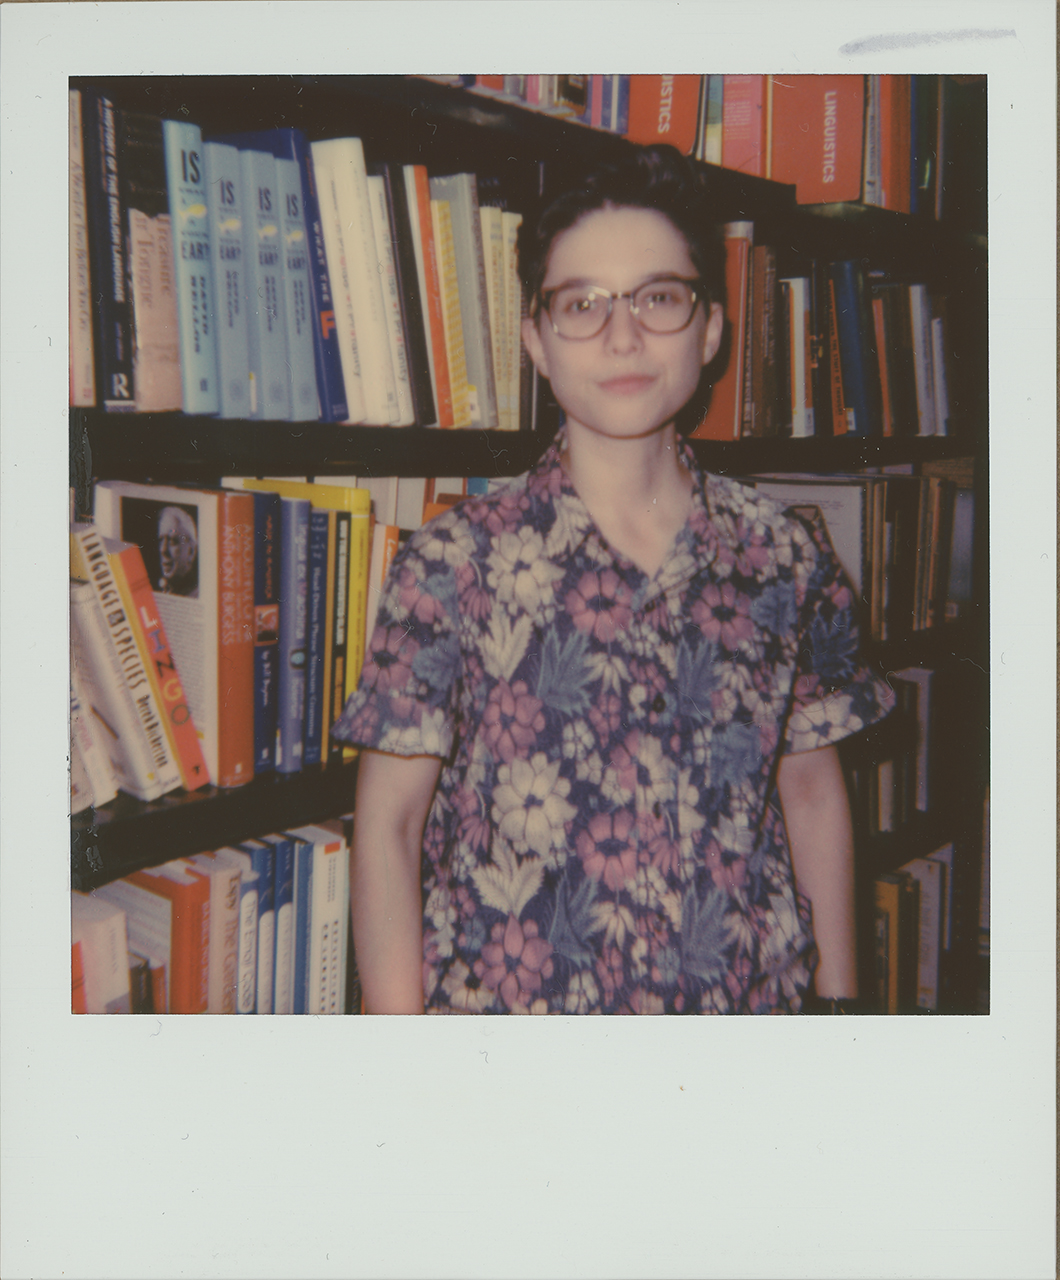 A.A. on Polaroid 600 film